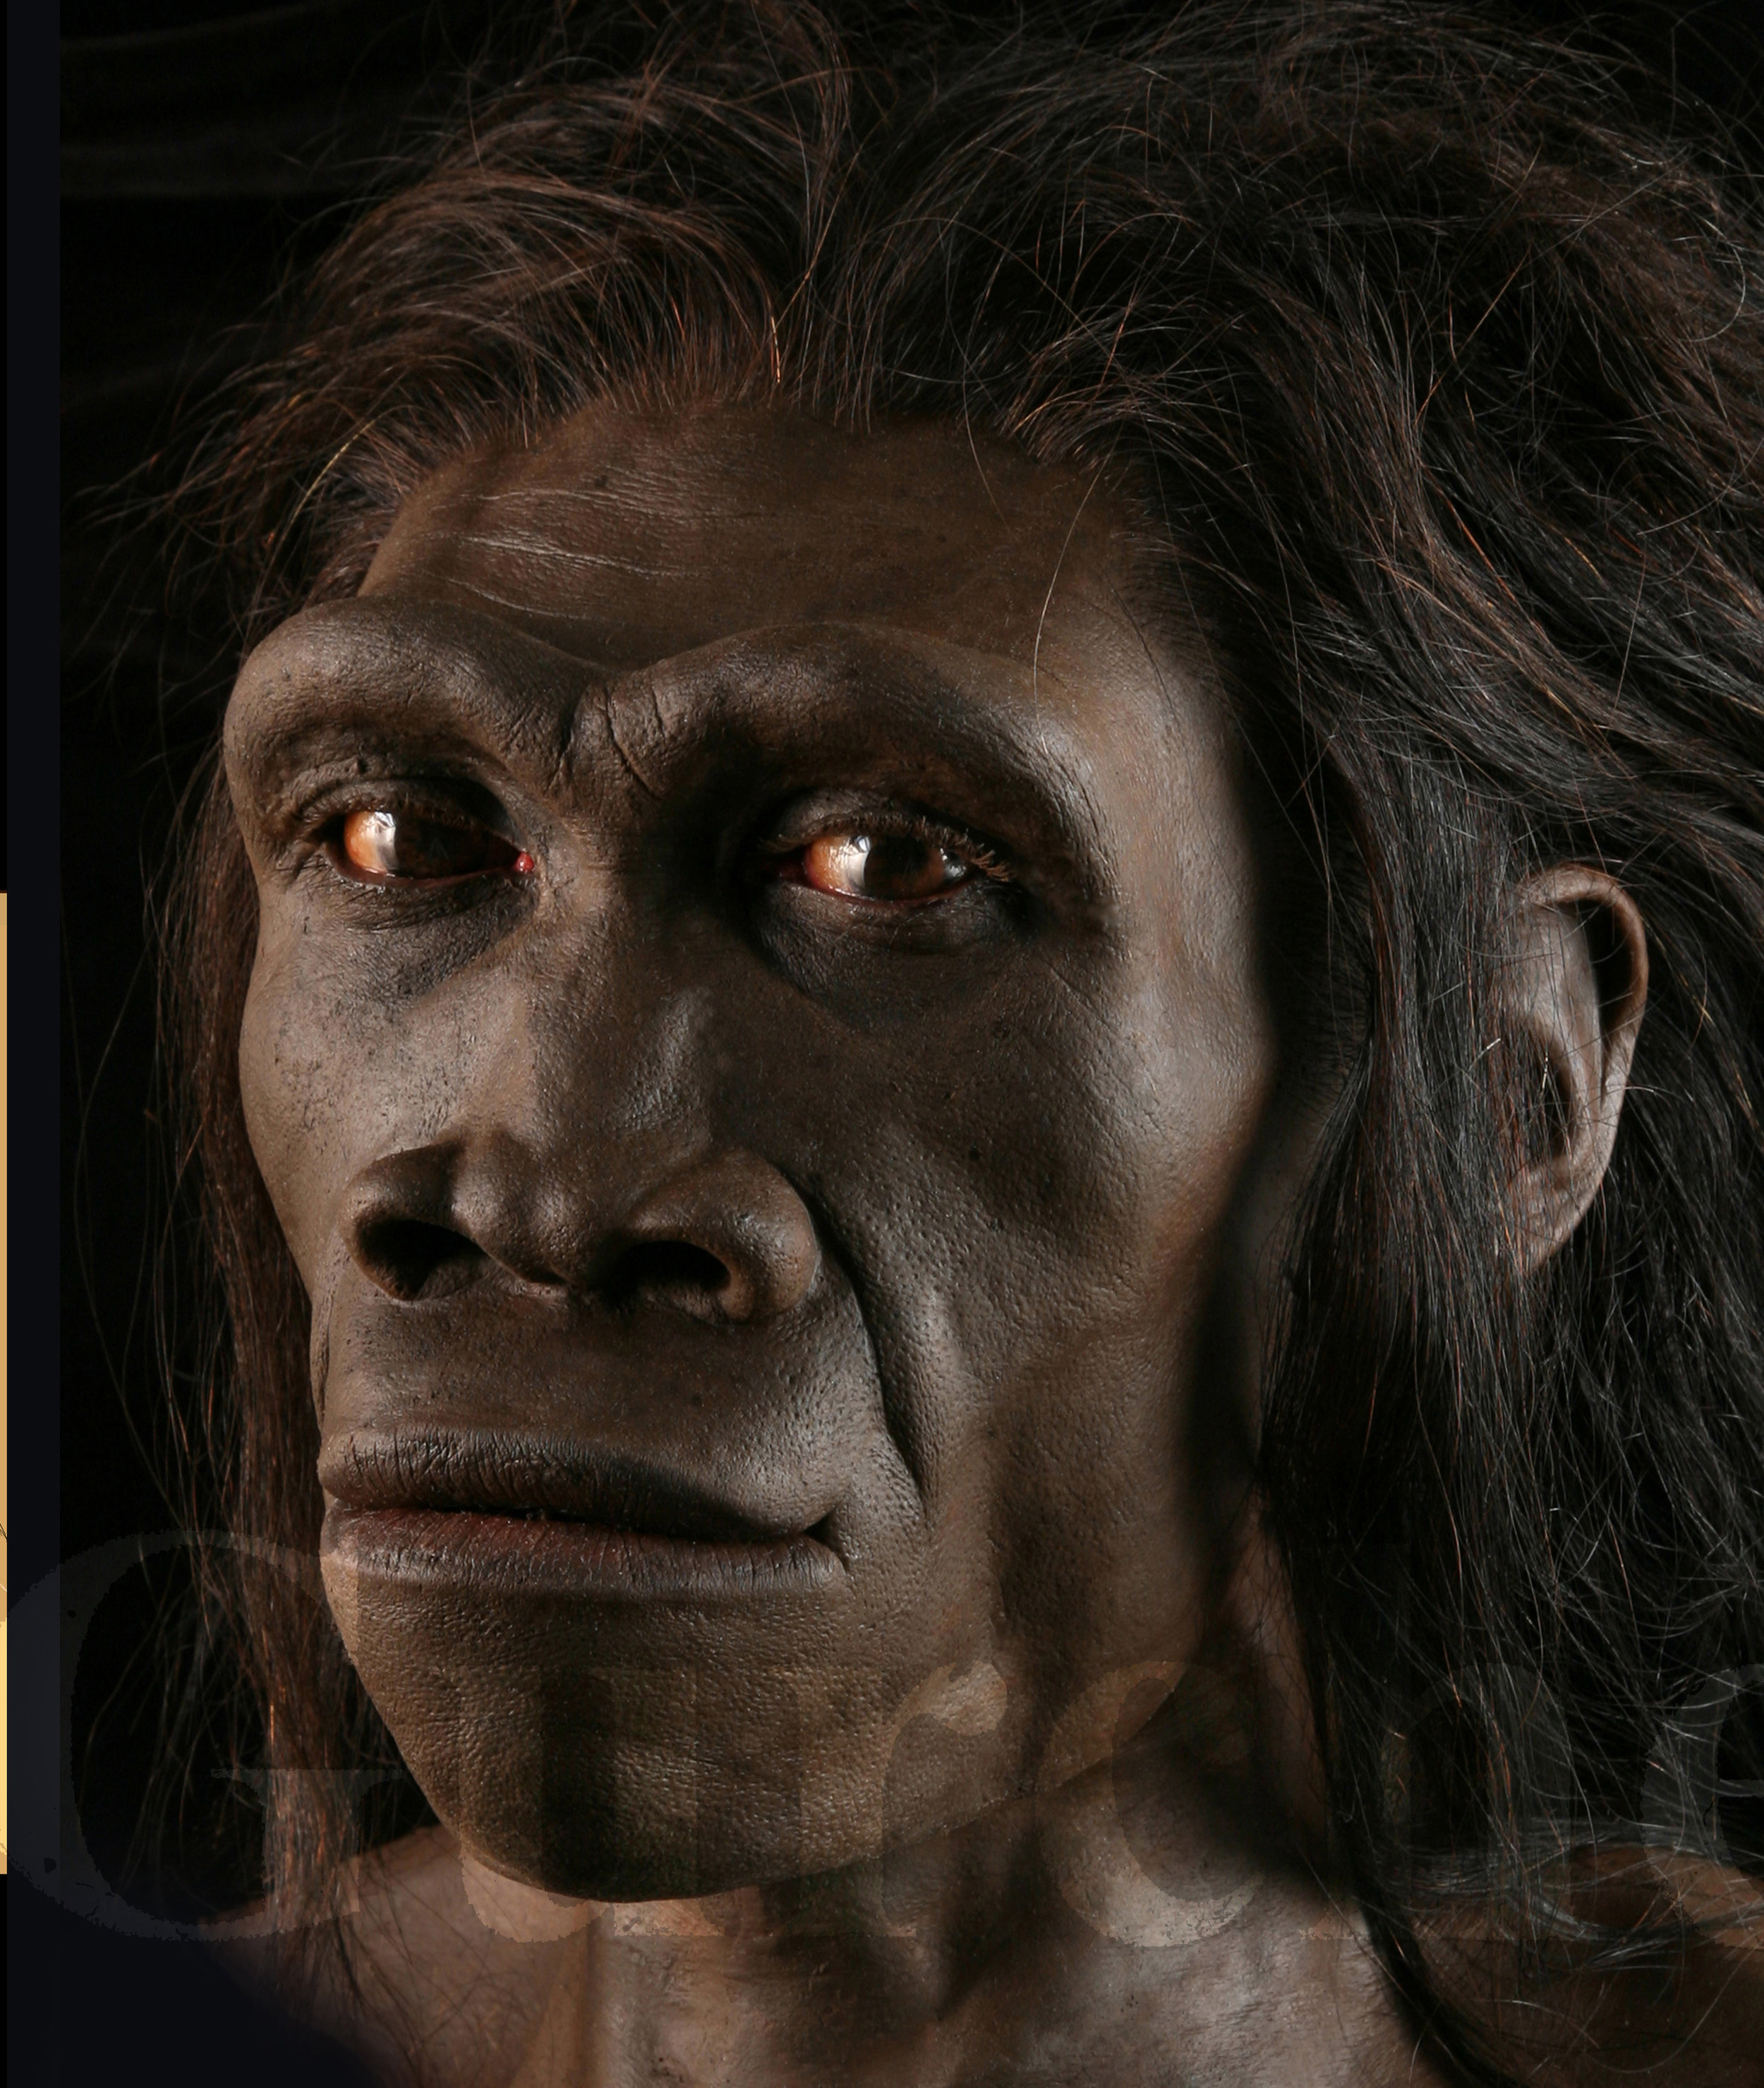 IMG 993 Homo erectus female based on ER 3733.jpg